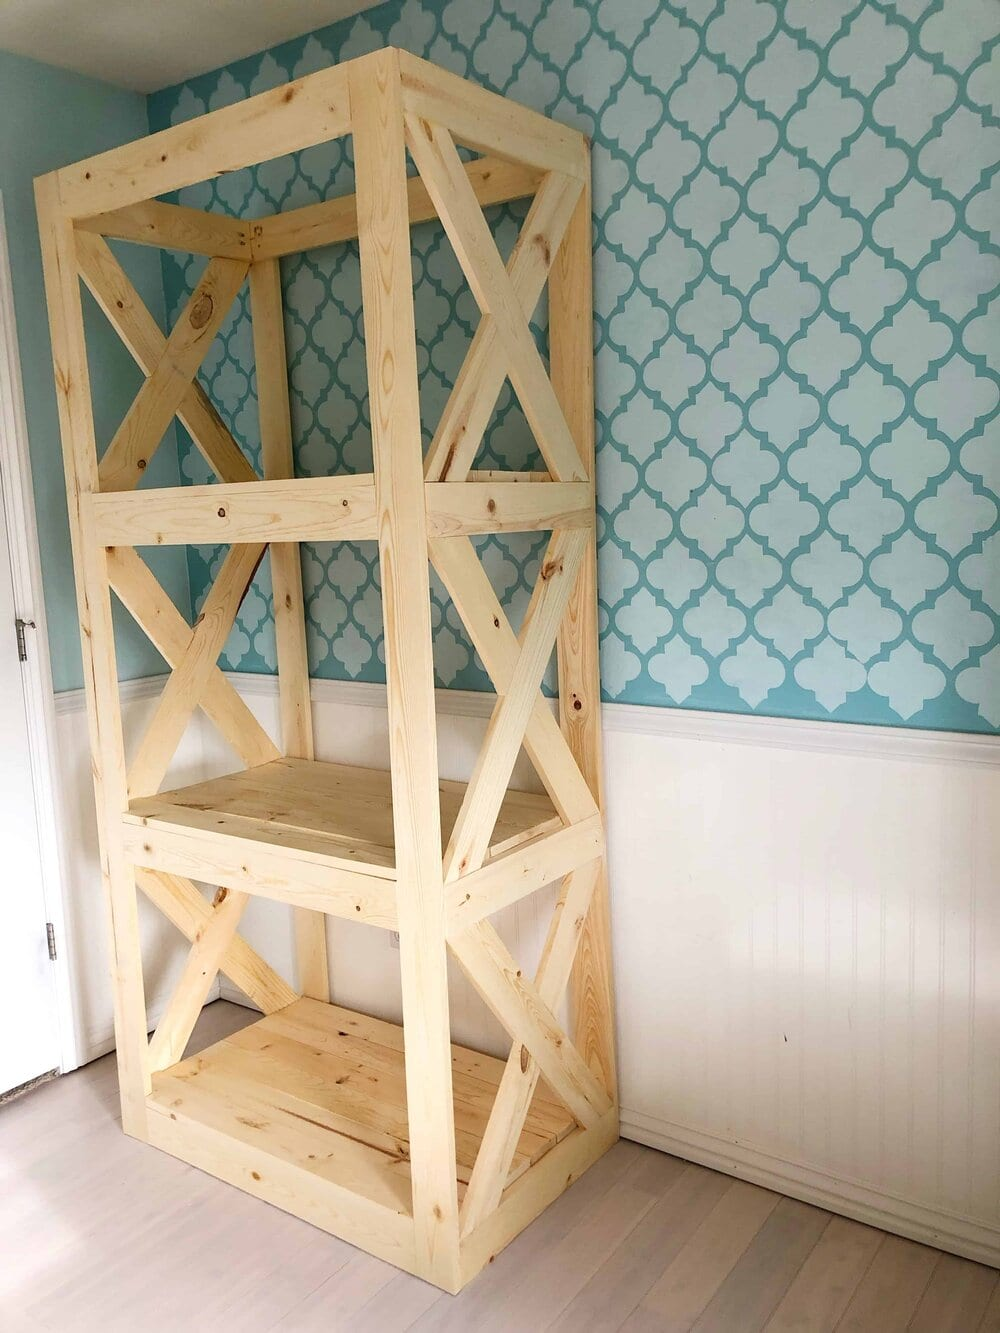 This is the unfinished shelving unit. We used a standard grade pine to keep the cost low. Missouri Girl blog.